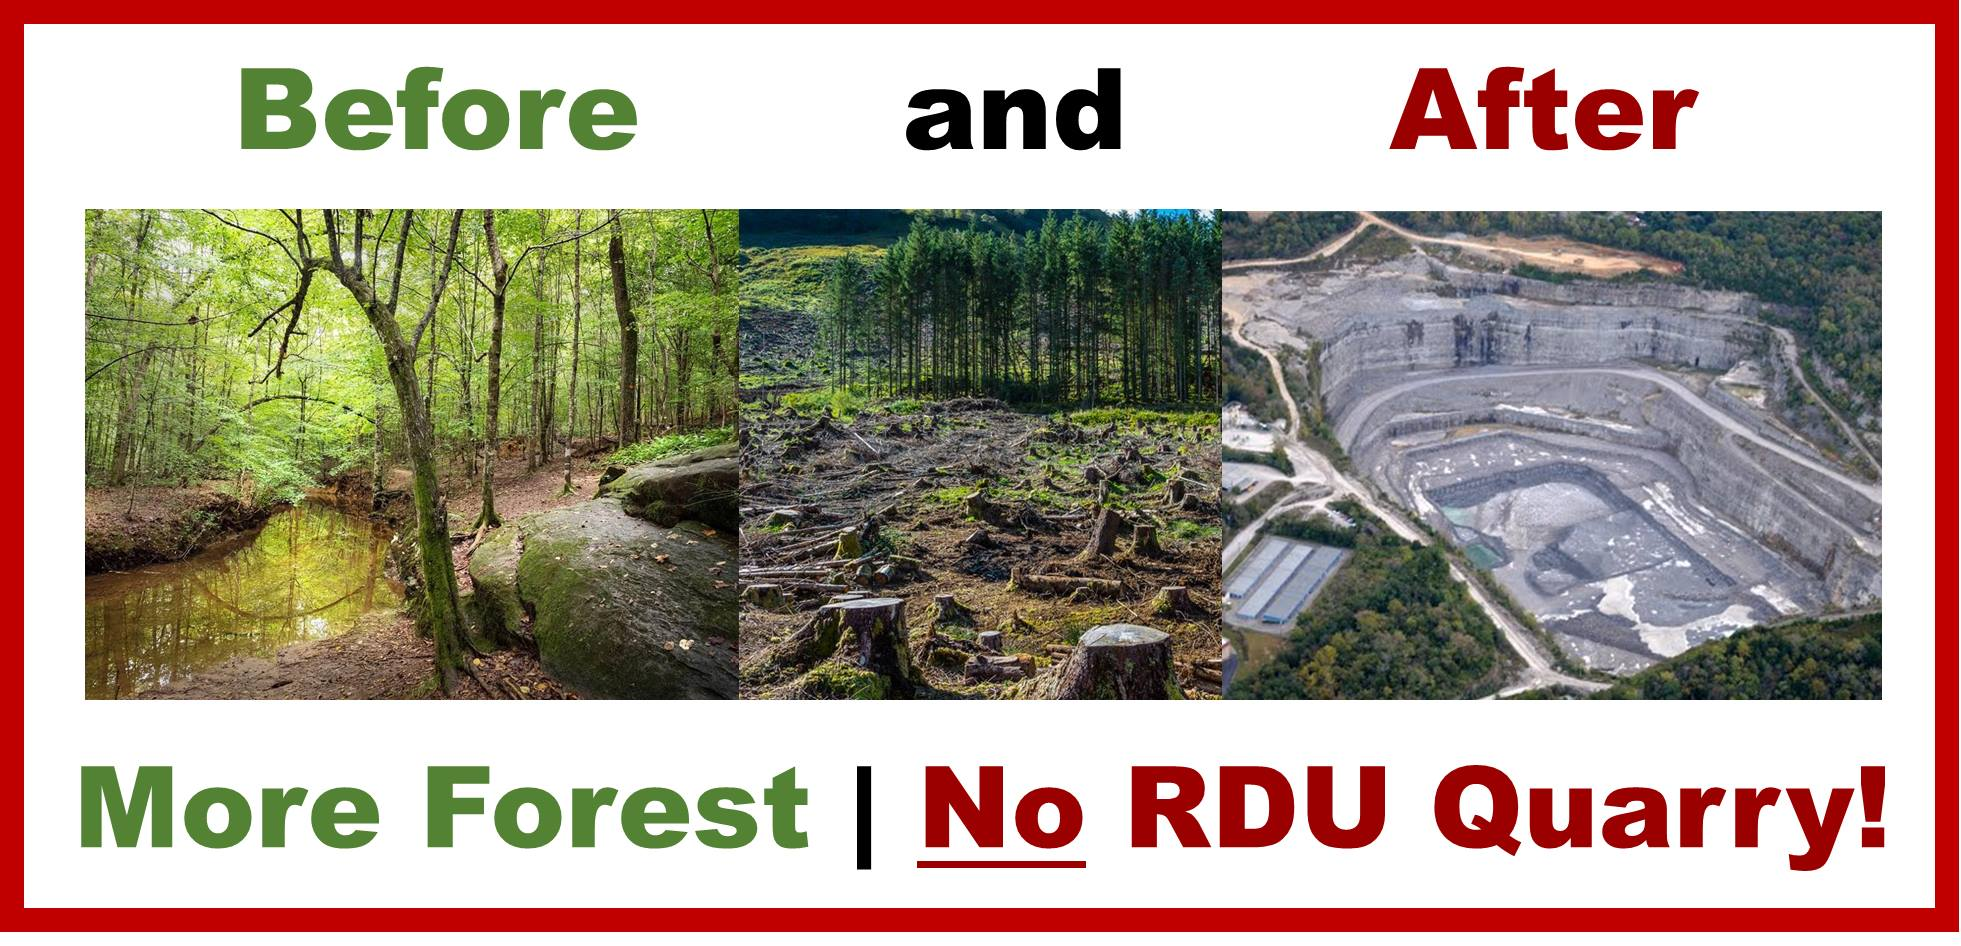 The Umstead Coalition - Stop RDU Quarry